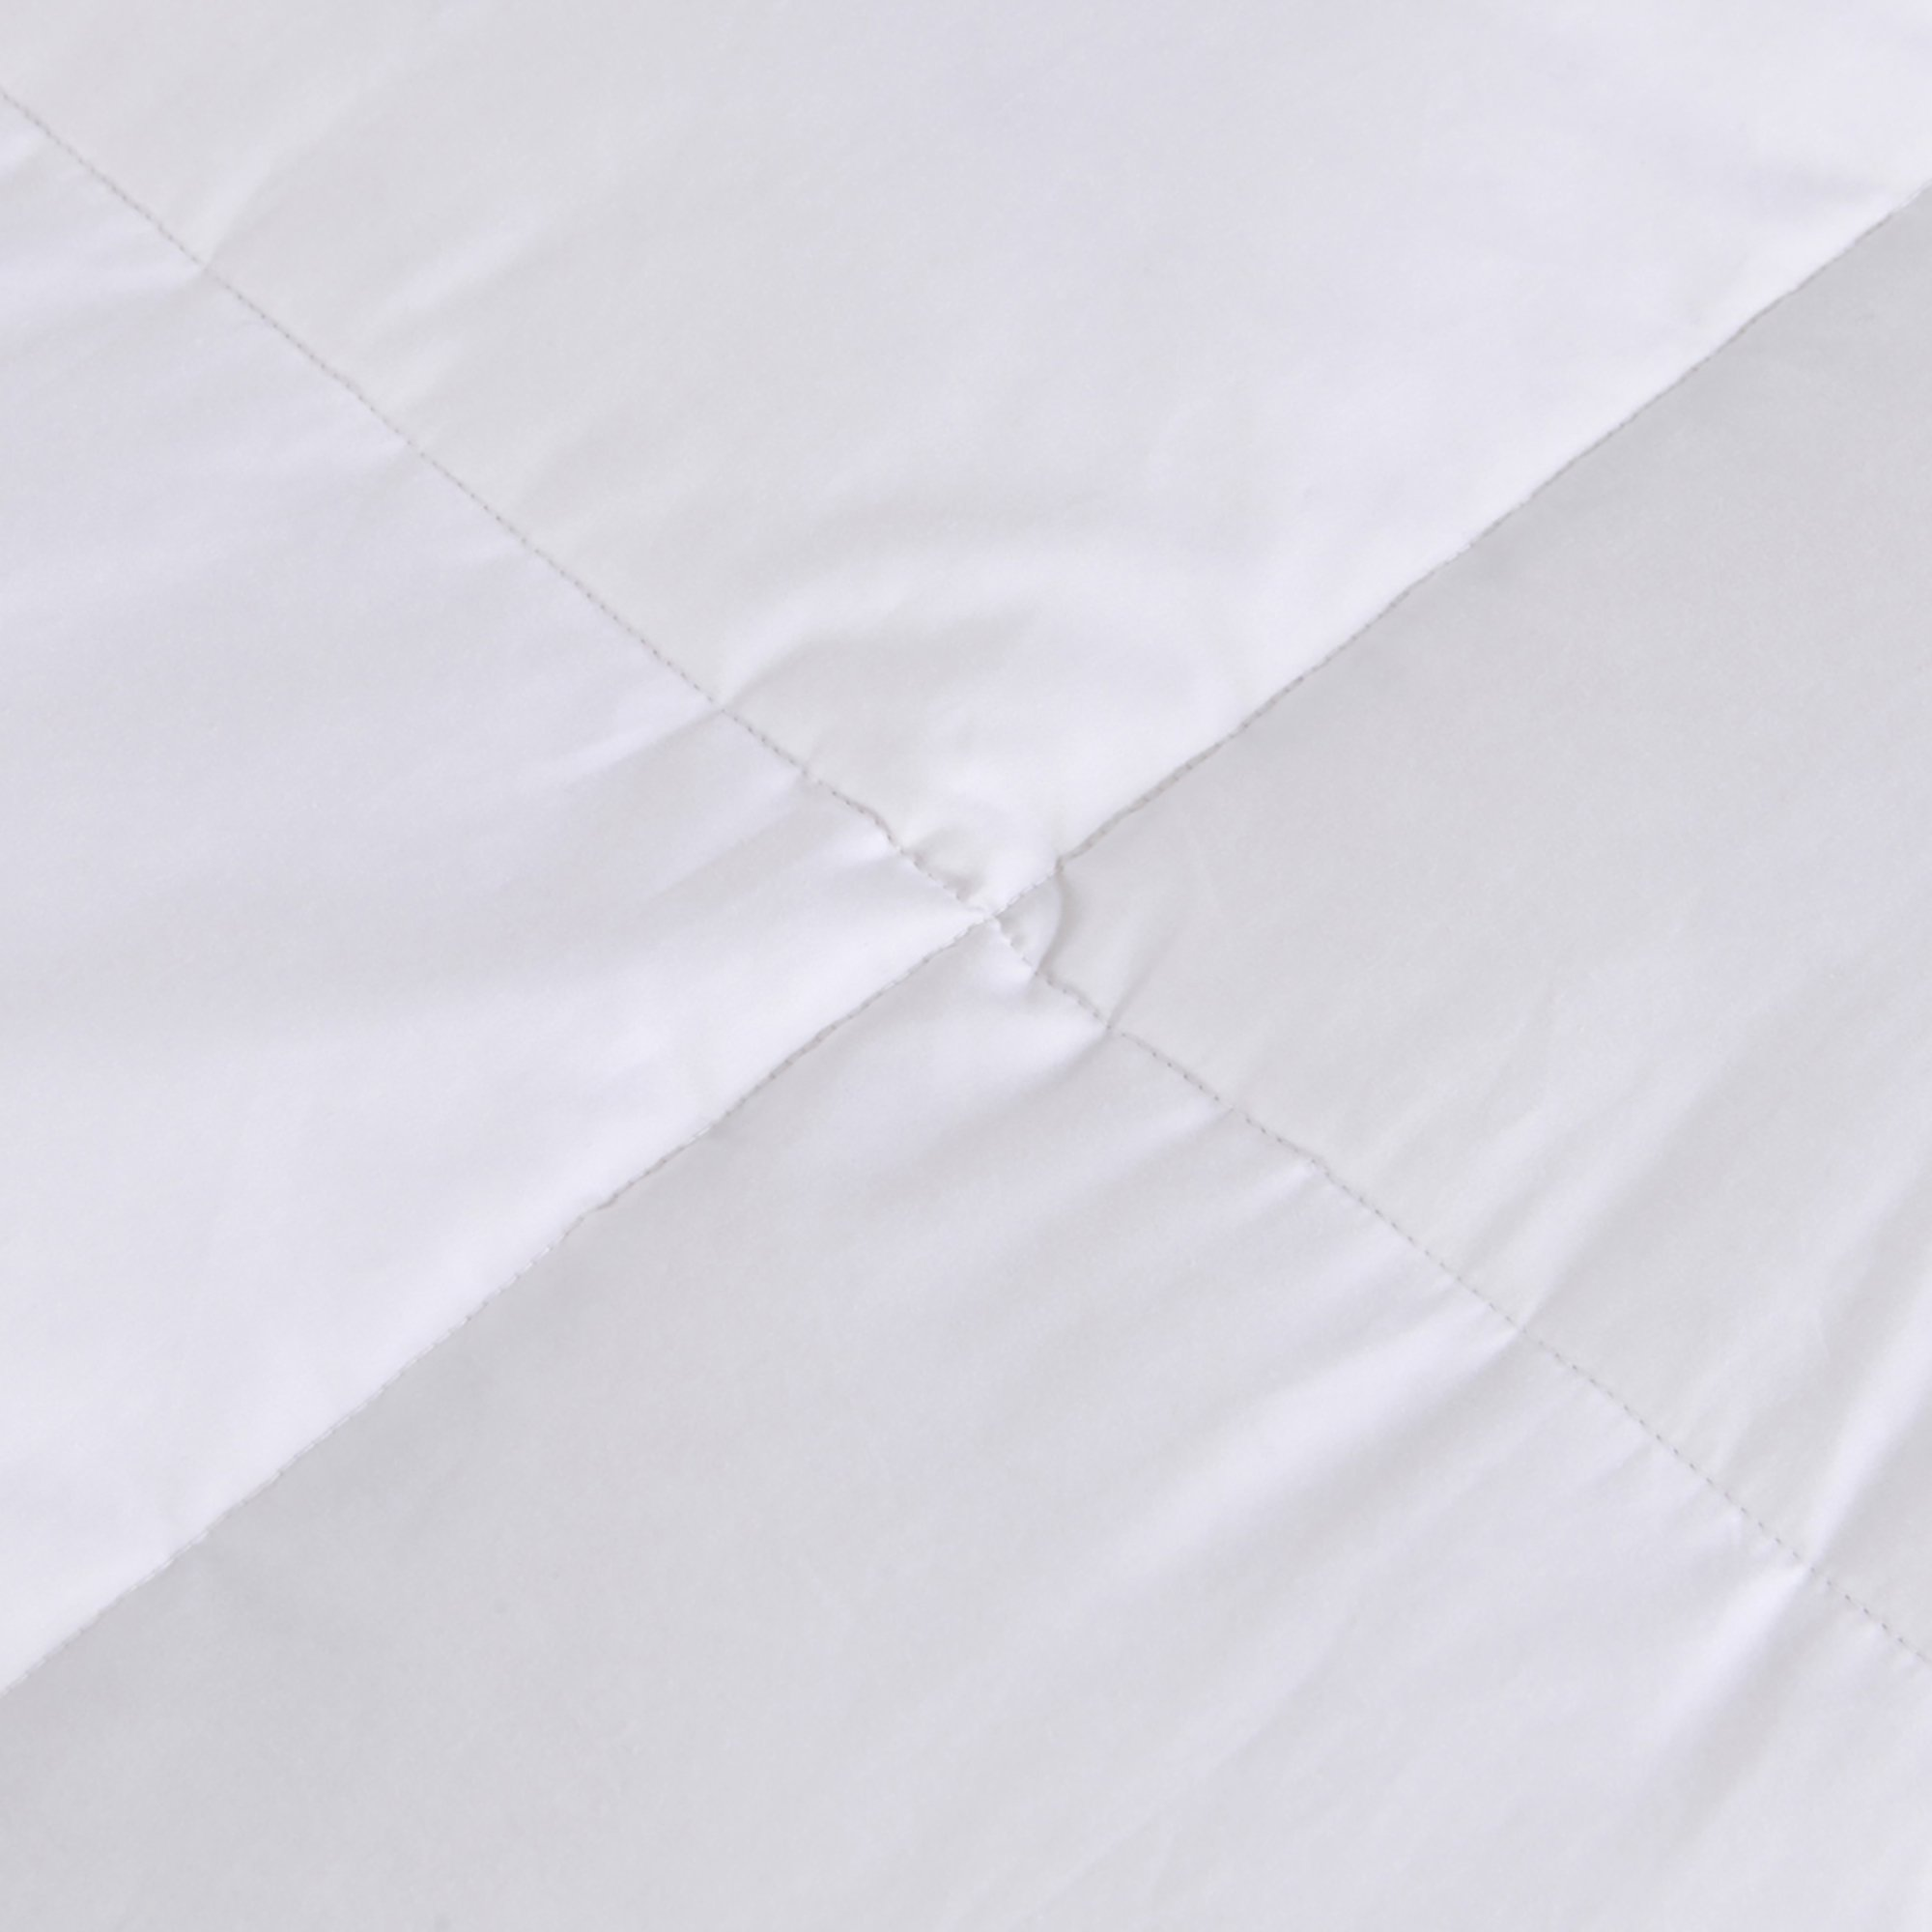 puredown Lightweight White Goose Down Comforter Duvet Insert 300 Thread Count 100% Cotton Fabric 600 Fill Power Down Down Conforter, Full/Queen, by puredown (Image #4)